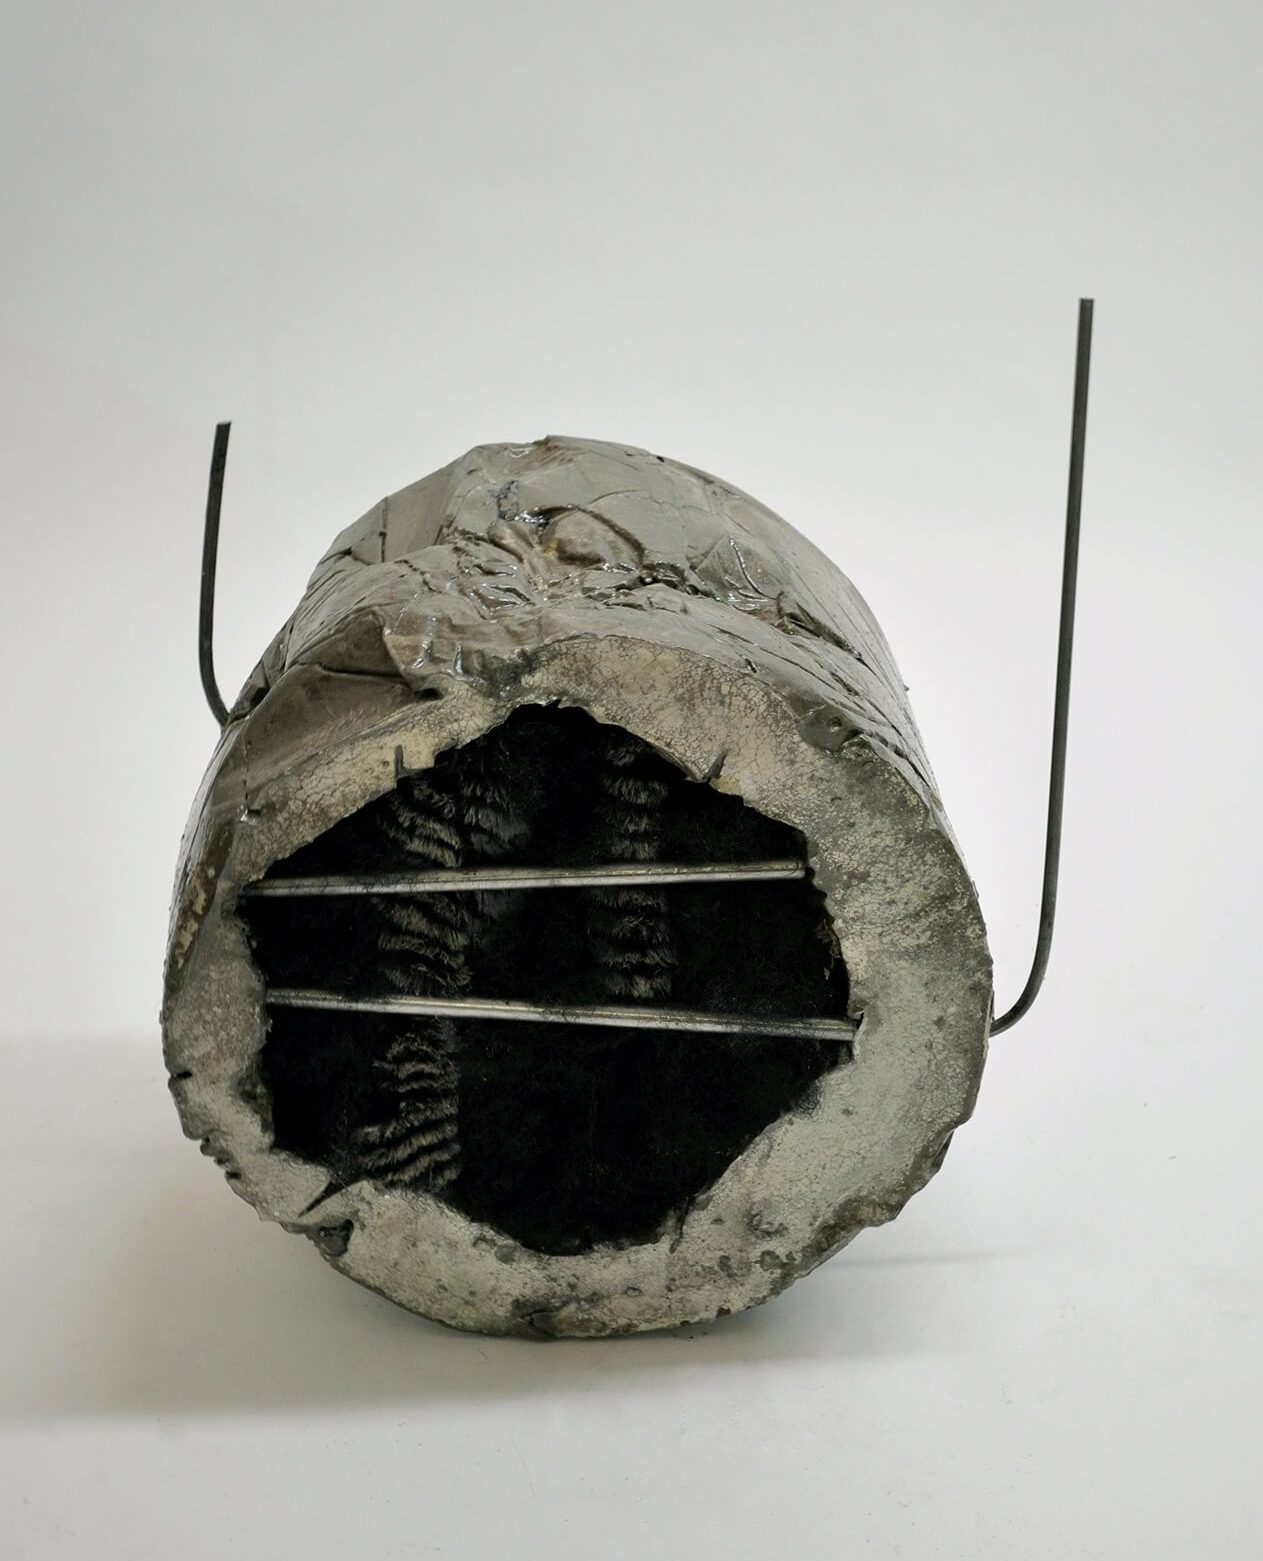 Hole with some bars, 2010, cast concrete, steel, faux fur, resin, black wig, 25 x 21 x 15 inches